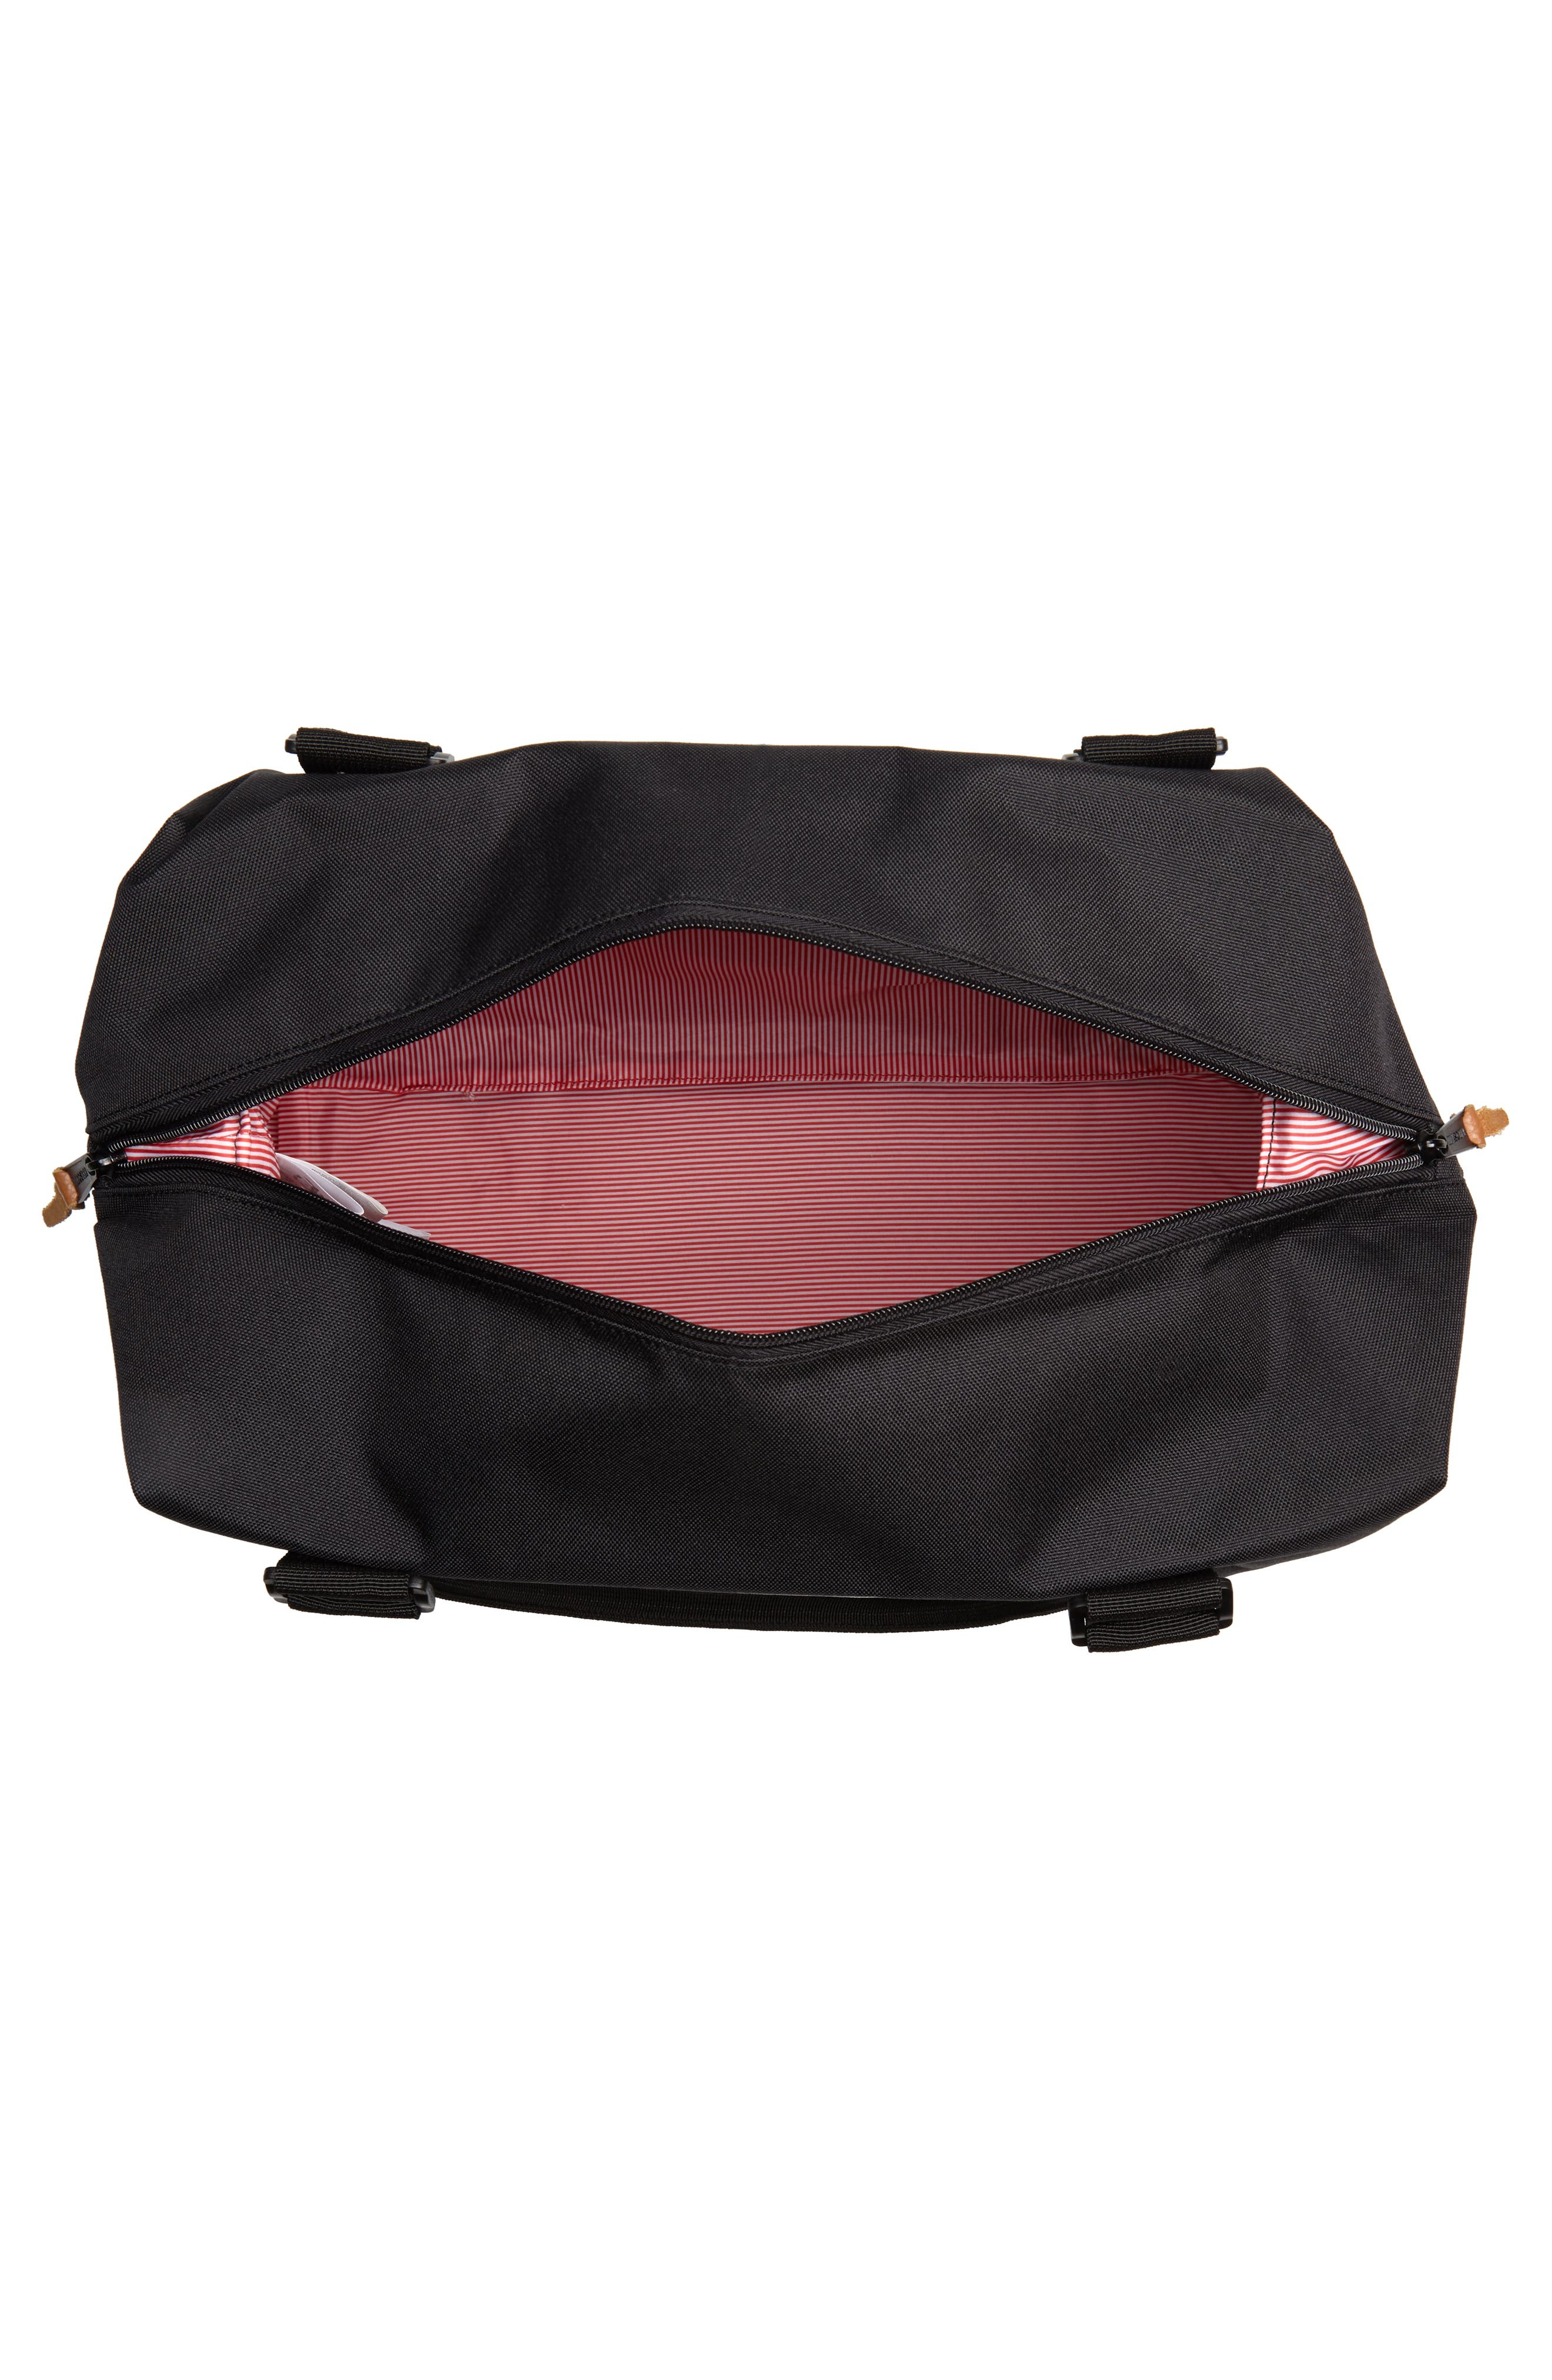 Strand Duffel Bag,                             Alternate thumbnail 4, color,                             001